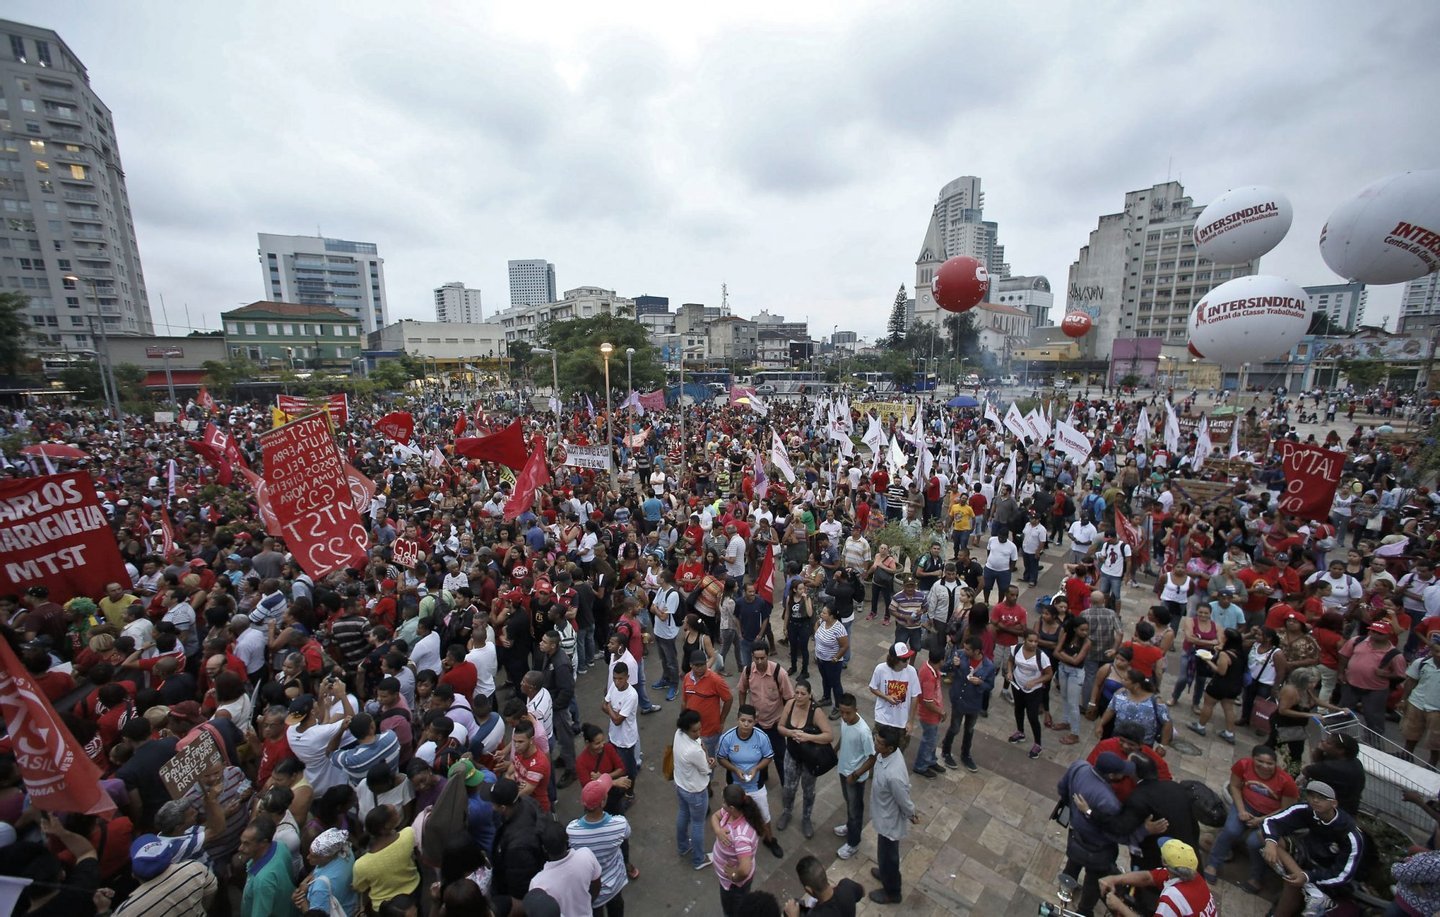 Members of the Landless Workers Movement (MTST) take part in a demonstration in Sao Paulo, Brazil on March 24, 2016. An MTST demonstration to defend a program of reforms, the demilitarization of the police and democracy took place Thursday in Sao Paulo. AFP PHOTO / Miguel SCHINCARIOL / AFP / Miguel Schincariol (Photo credit should read MIGUEL SCHINCARIOL/AFP/Getty Images)